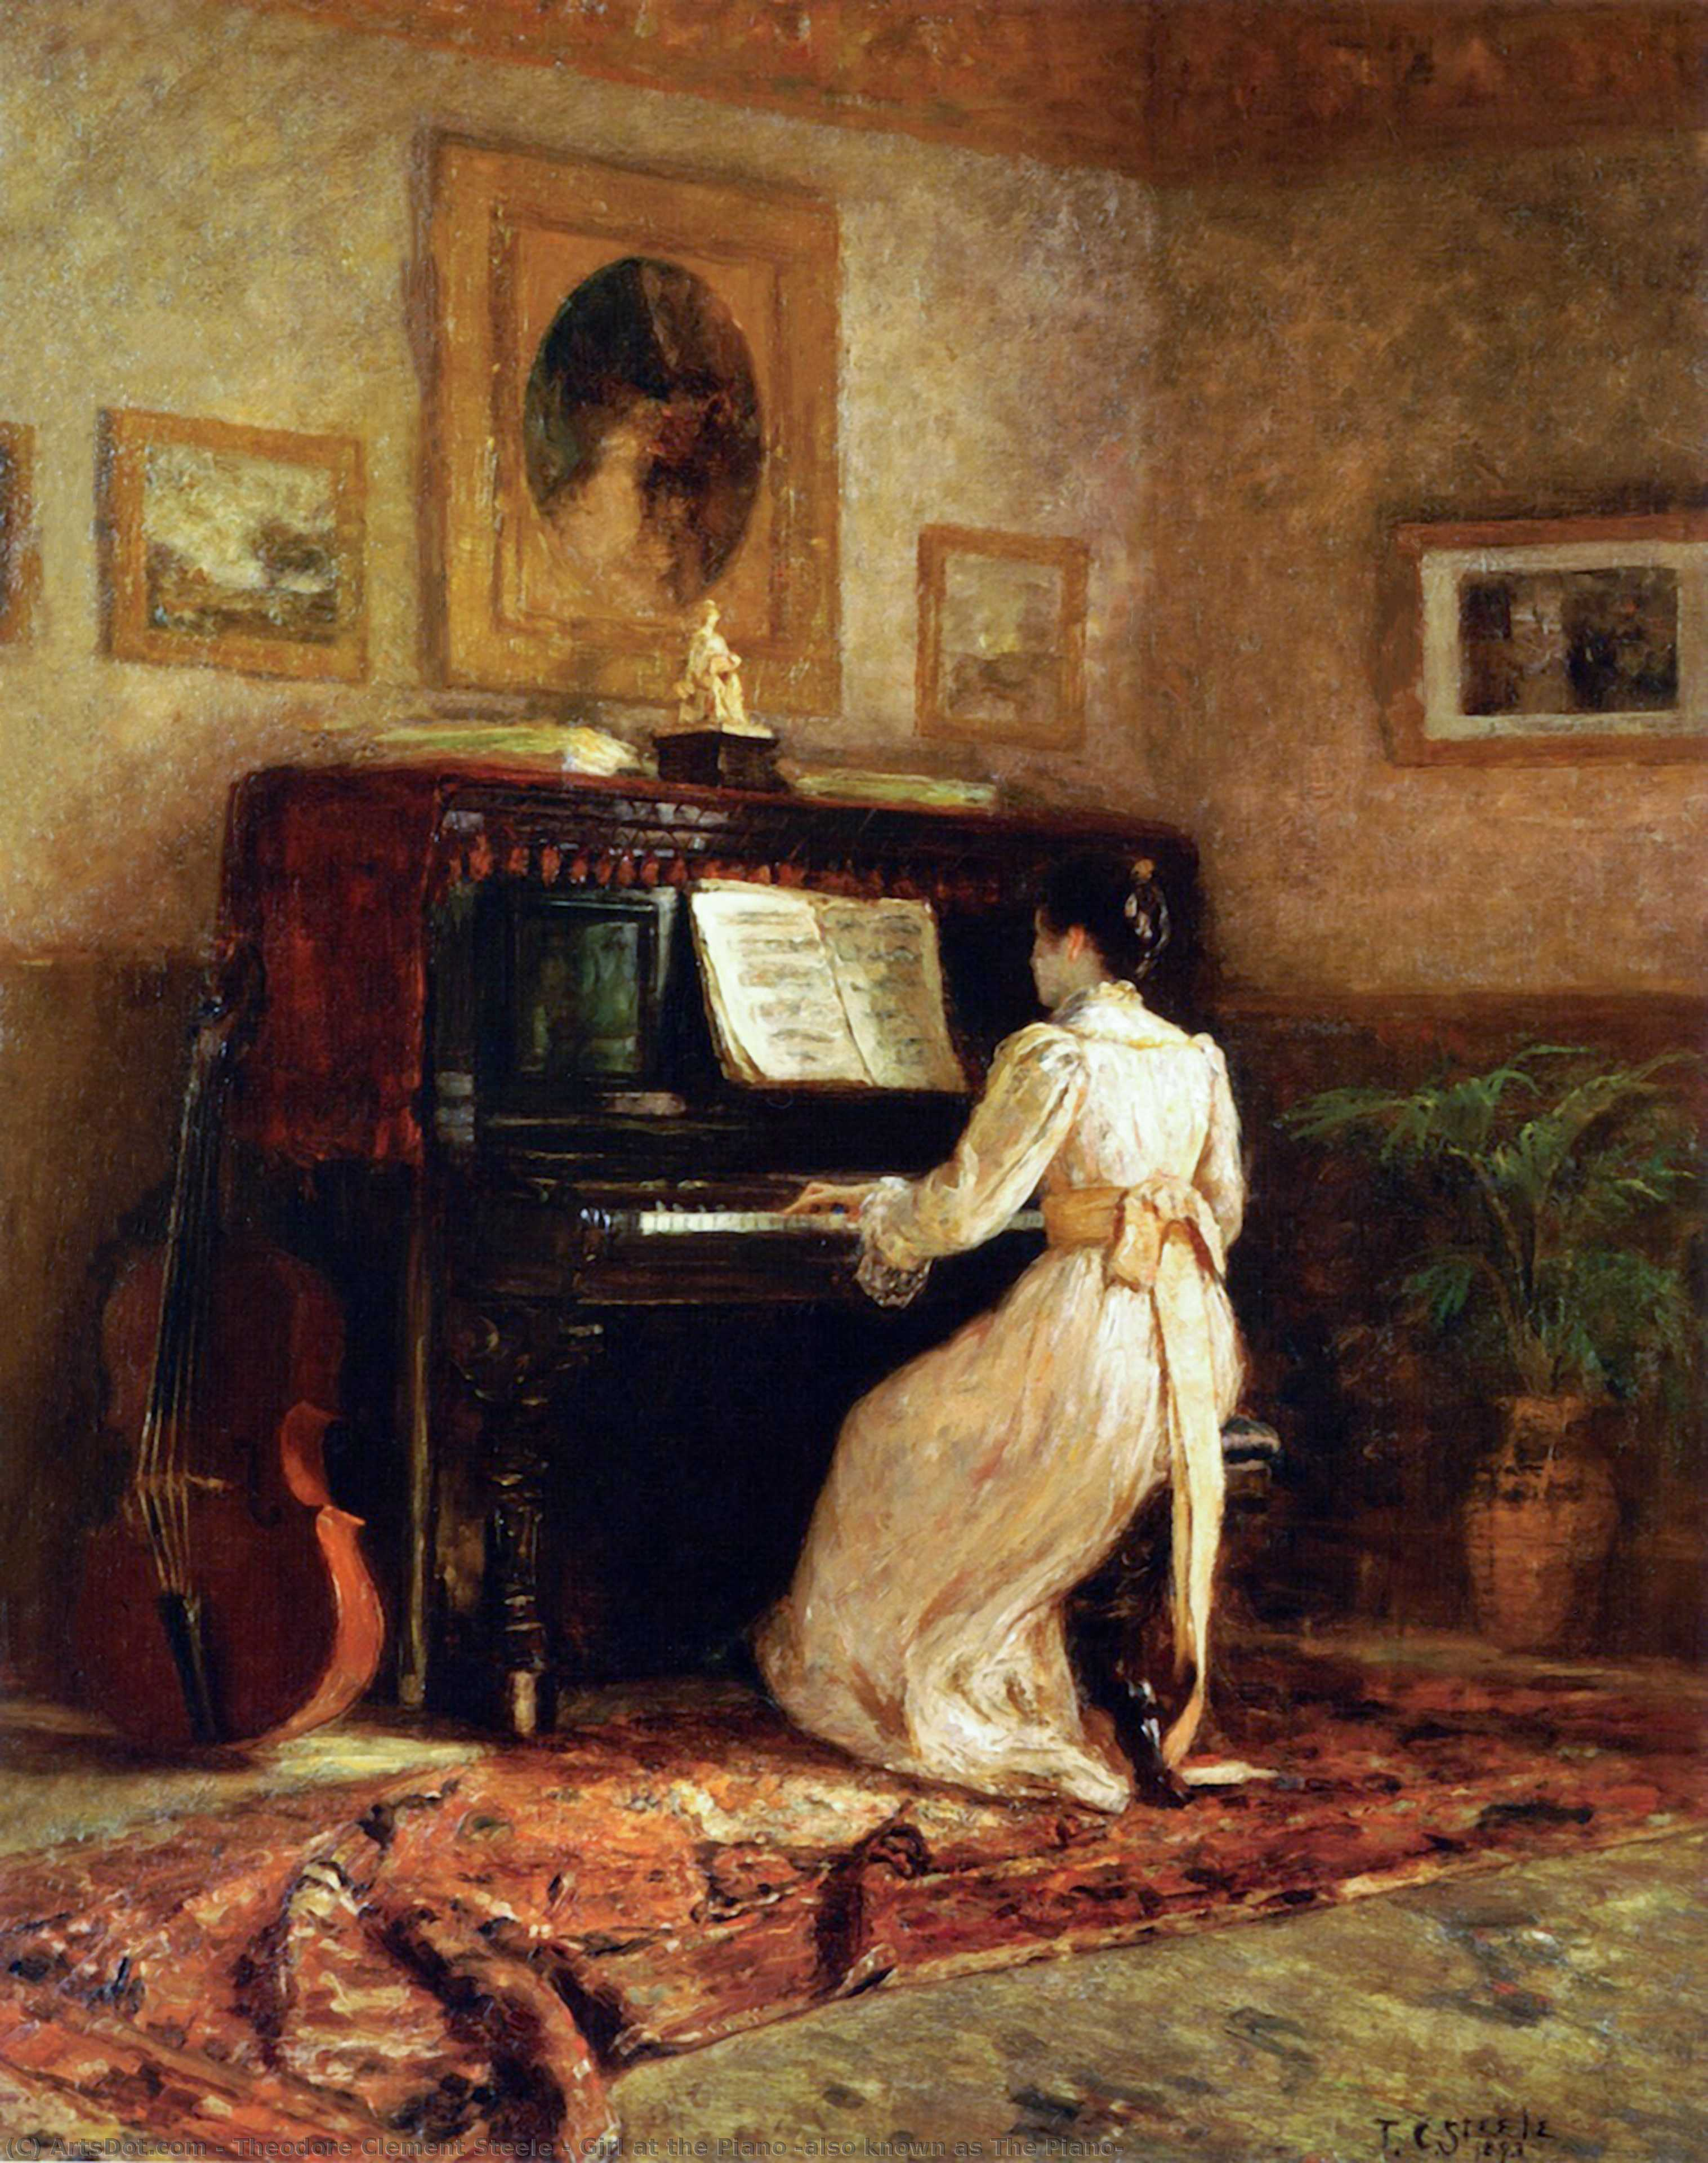 Wikioo.org - The Encyclopedia of Fine Arts - Painting, Artwork by Theodore Clement Steele - Girl at the Piano (also known as The Piano)